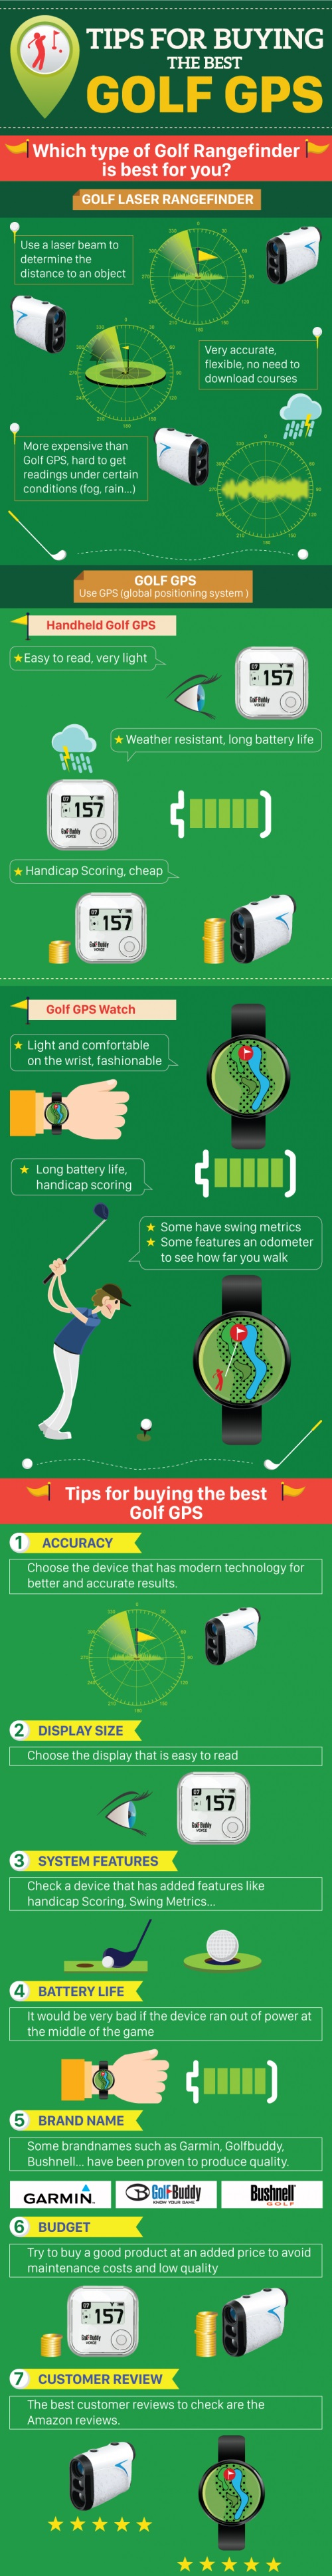 Tips for buying golf gps